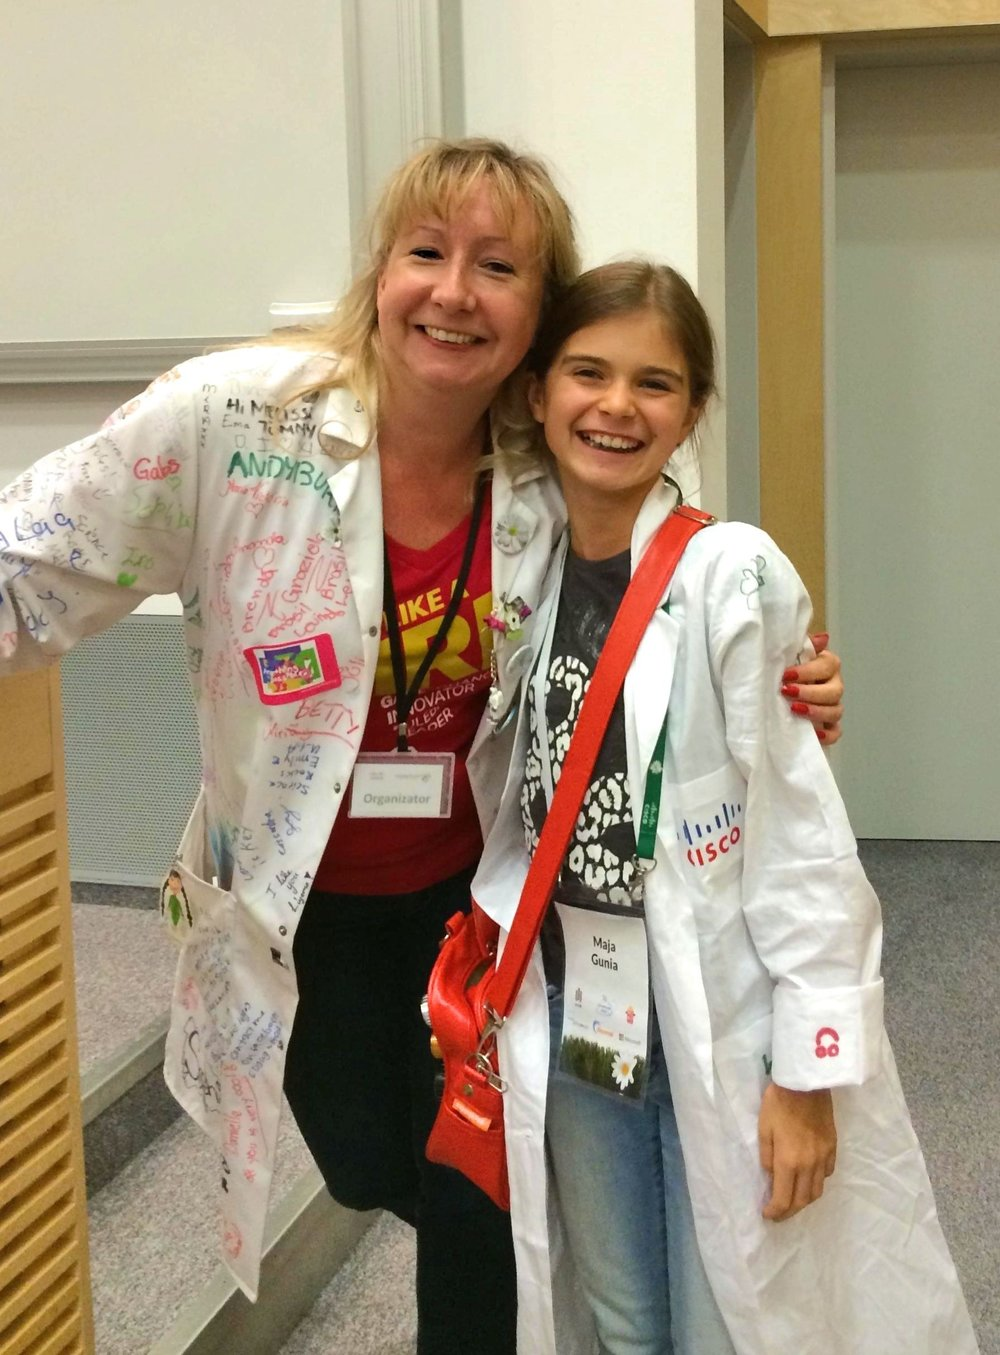 That's Melissa and me, 4 years ago during our first event in Krakow! Yes, I still have my labcoat :)